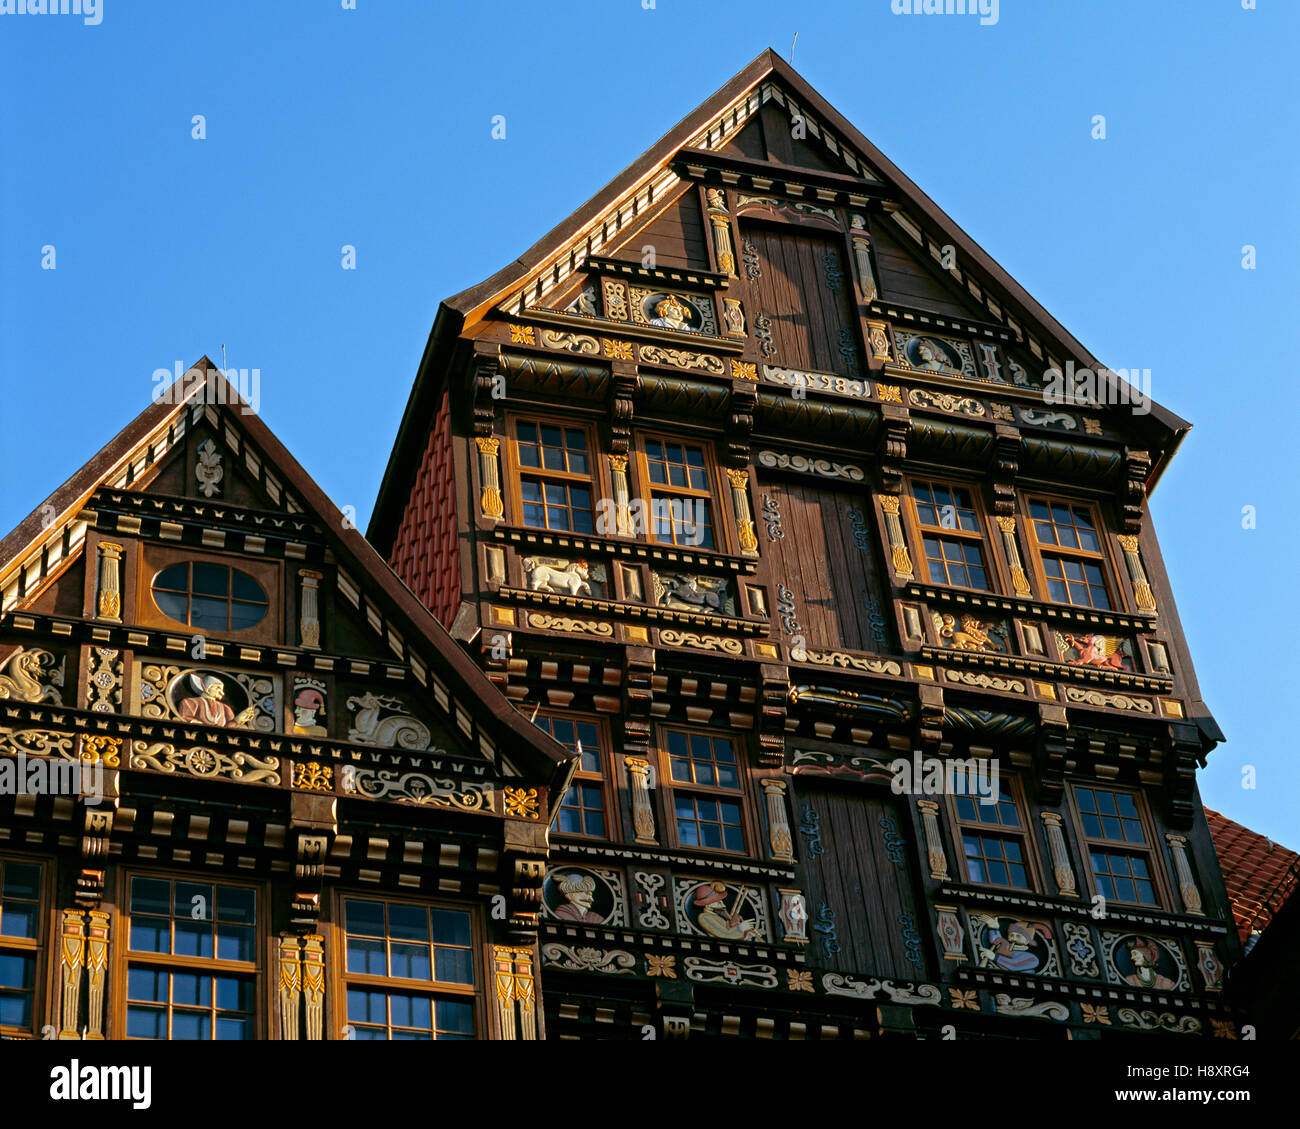 Decorative woodwork on the Wedekindhaus at the historical market square, Hildesheim, Lower Saxony, Germany - Stock Image